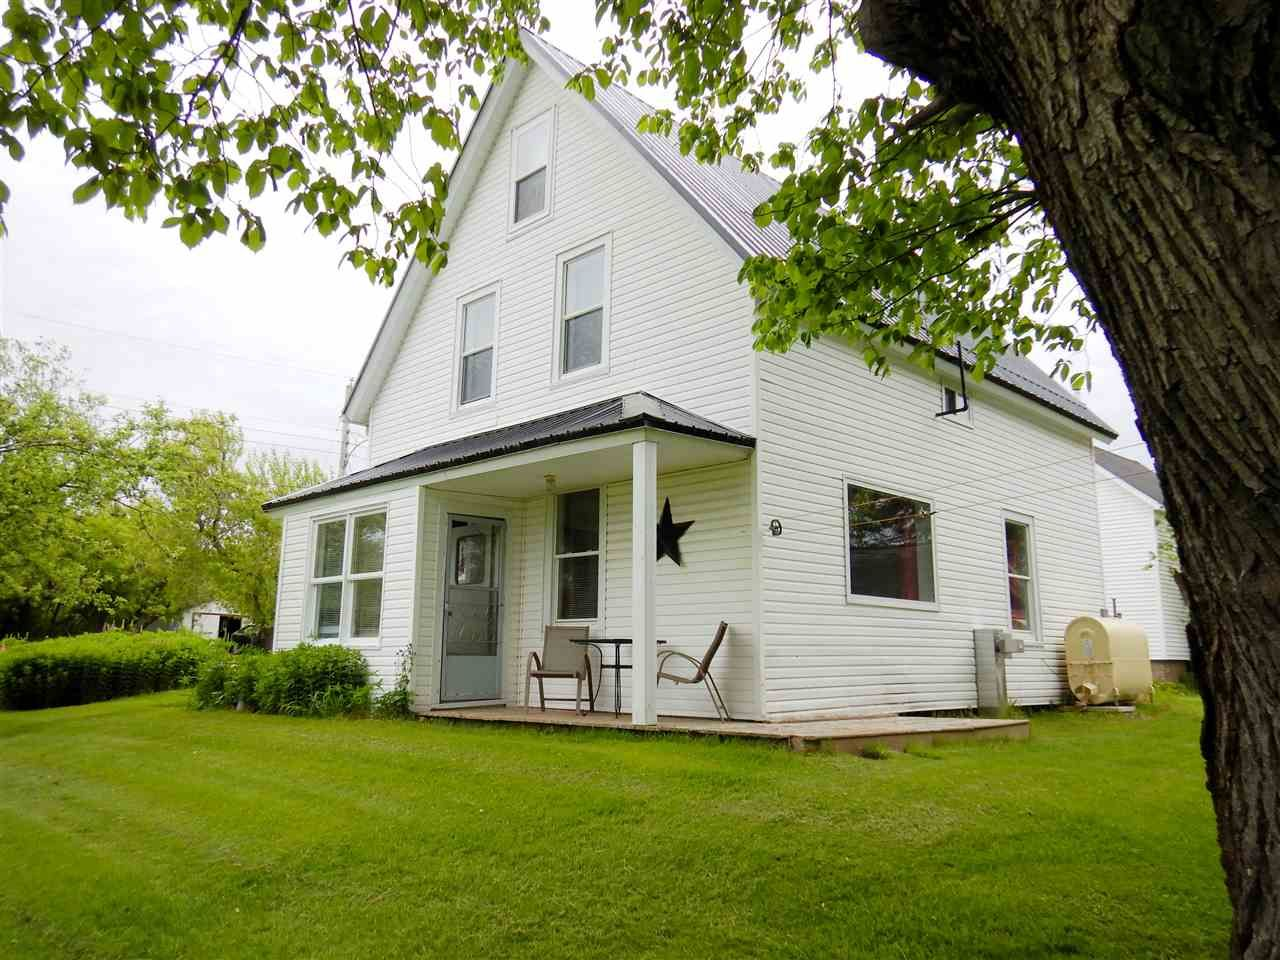 Main Photo: 12 Elm Street in River Hebert: 102S-South Of Hwy 104, Parrsboro and area Residential for sale (Northern Region)  : MLS®# 202010373